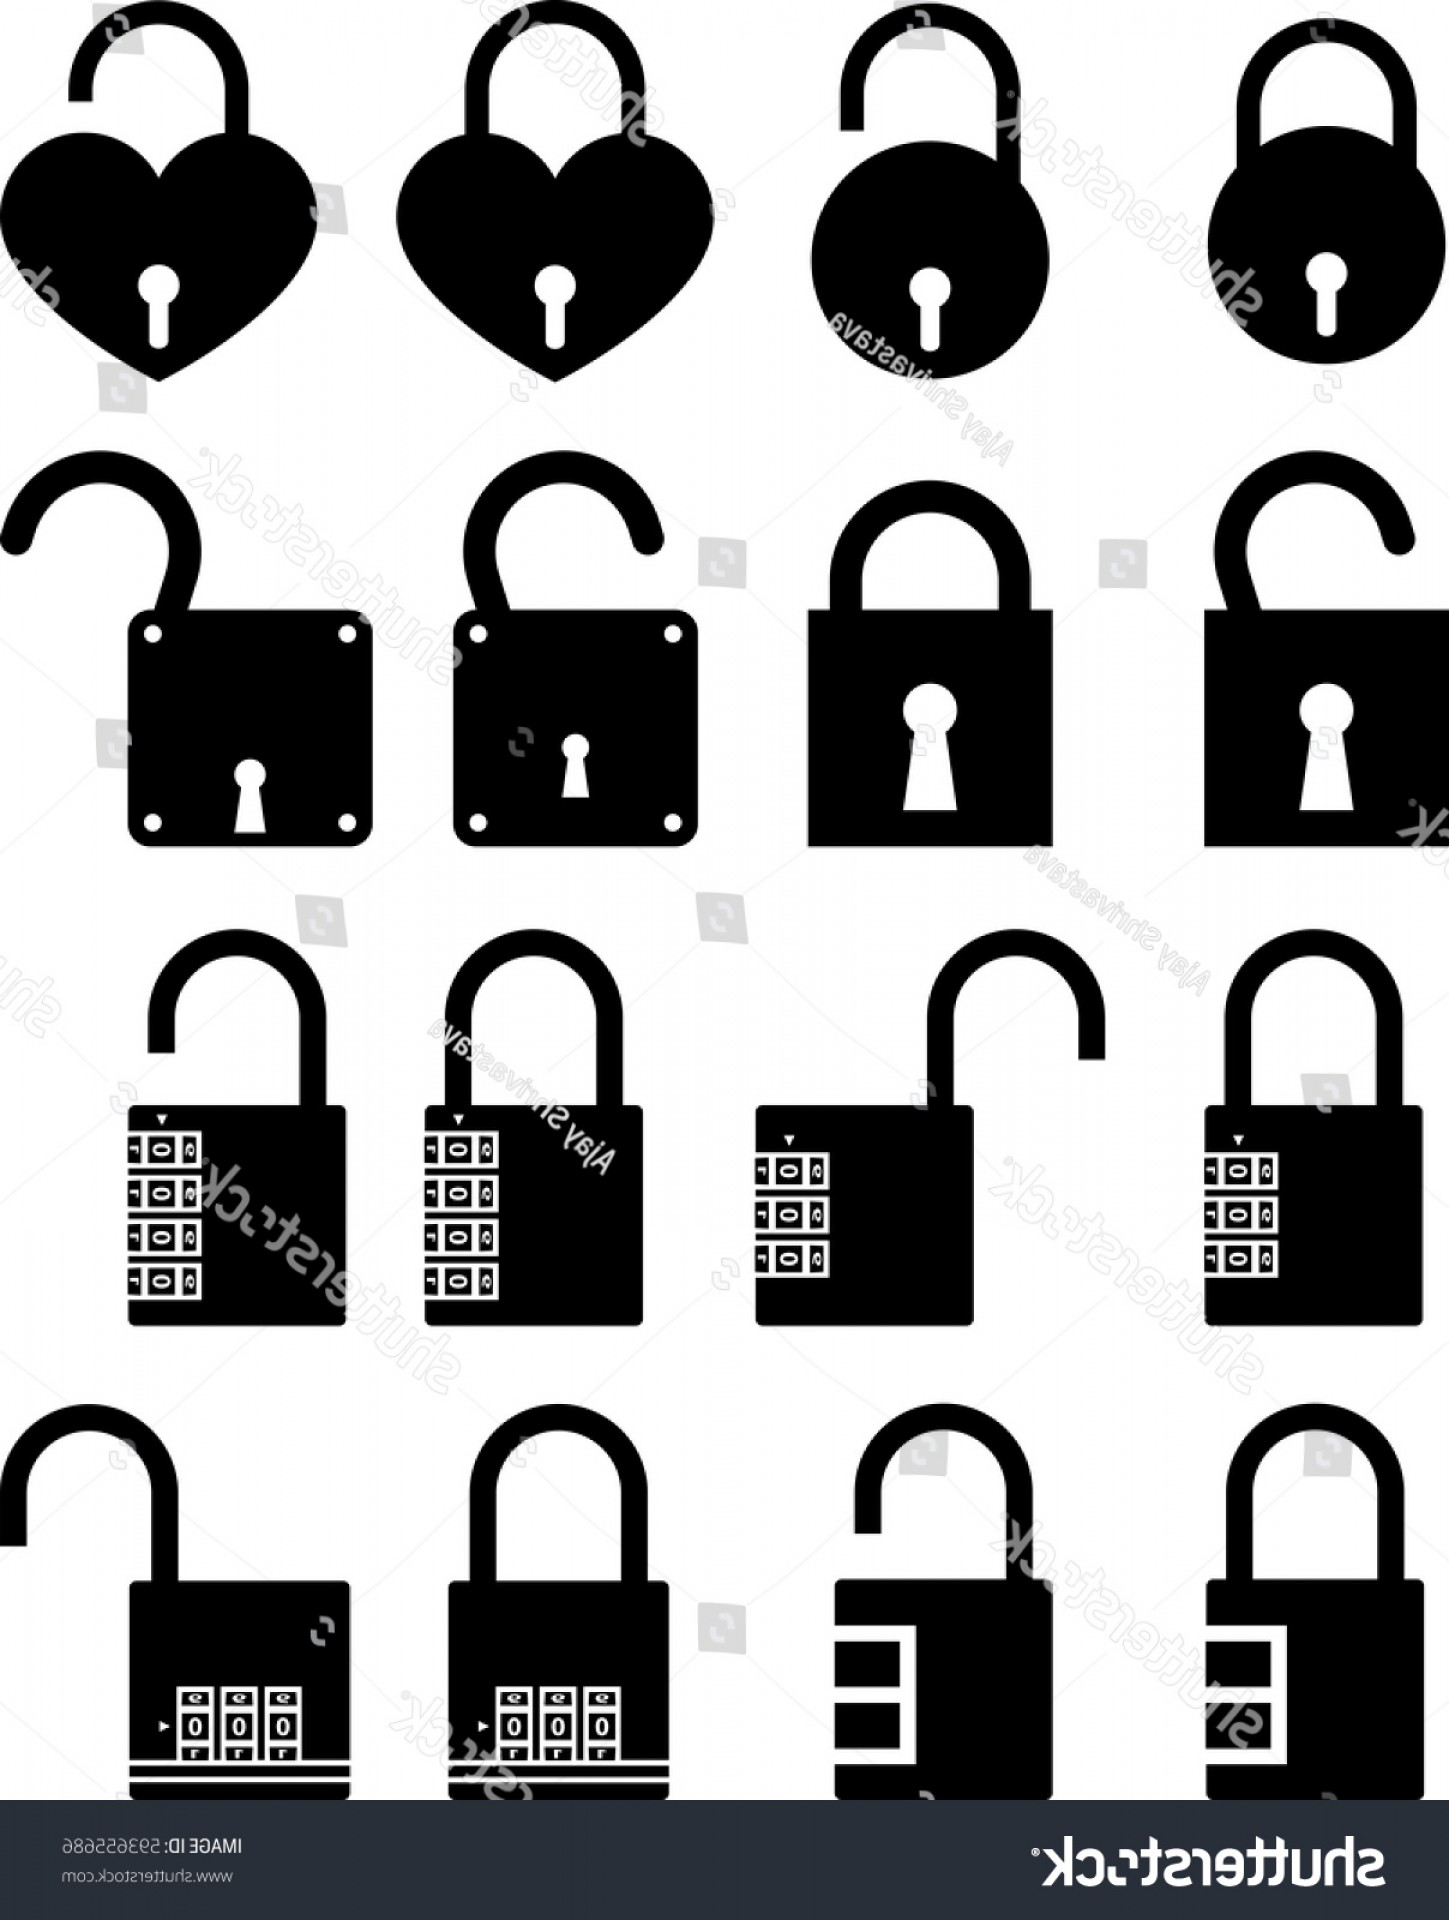 Lock Unlock Icon Vector: Lock Unlock Icon Vector Illustration